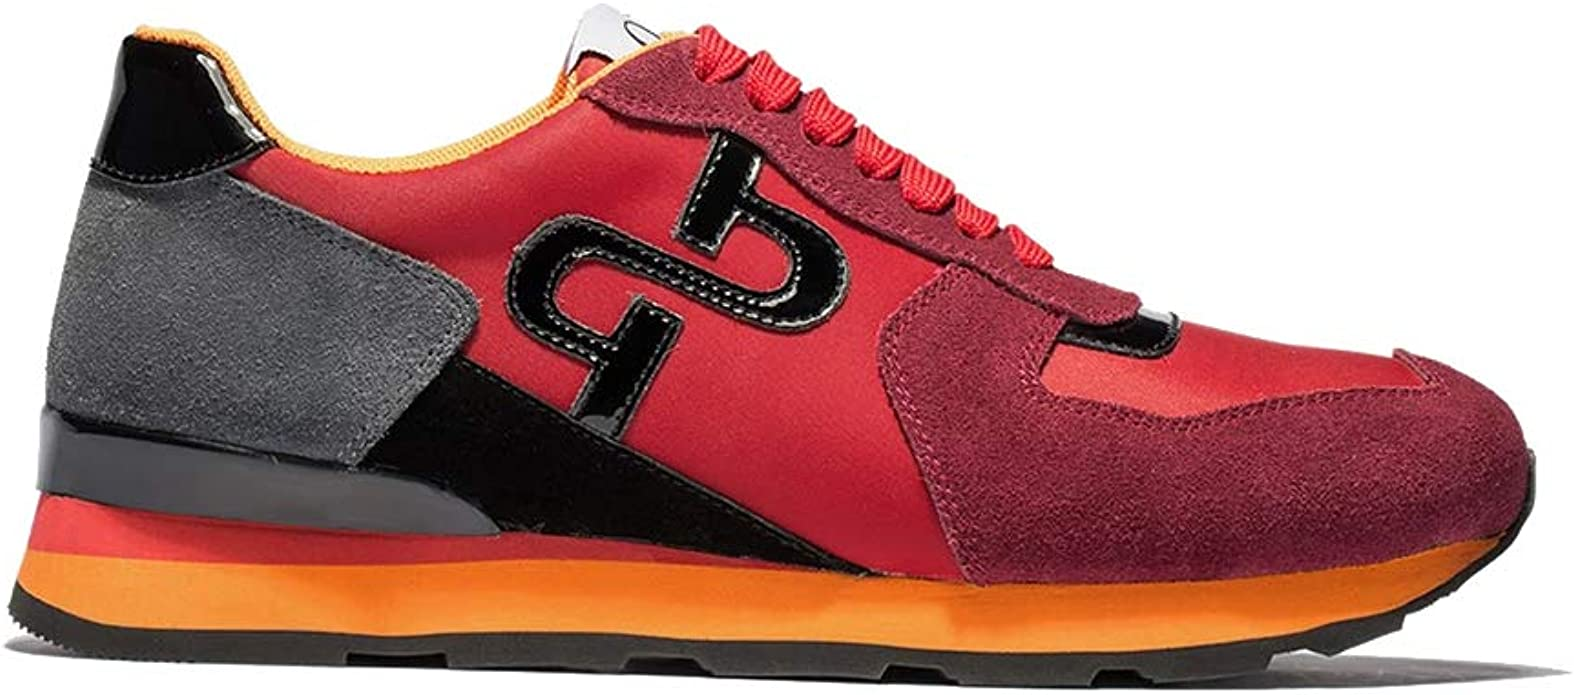 OPP Men's Casual Leather Energy Lace-Up